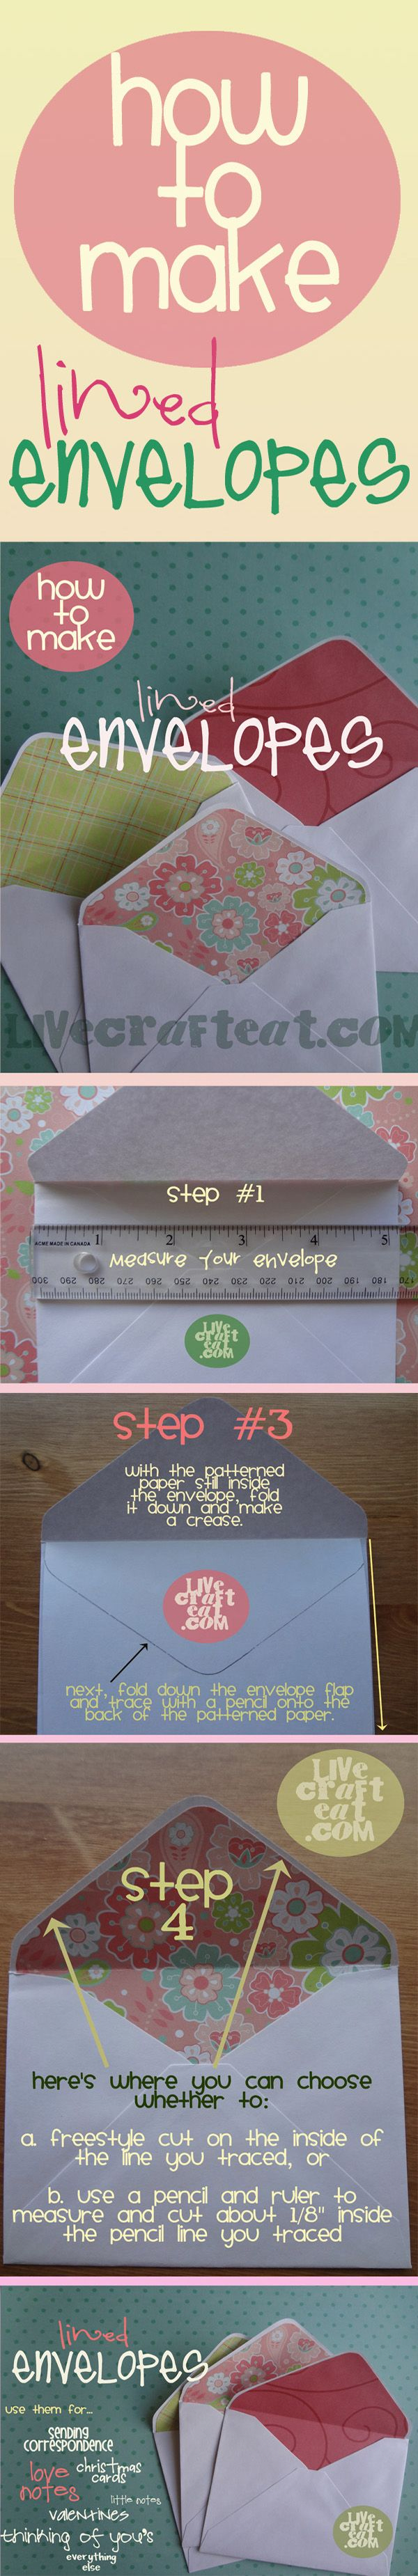 how to make lined envelopes - the easy way. perfect for christmas correspondence and cards! | www.livecrafteat.com